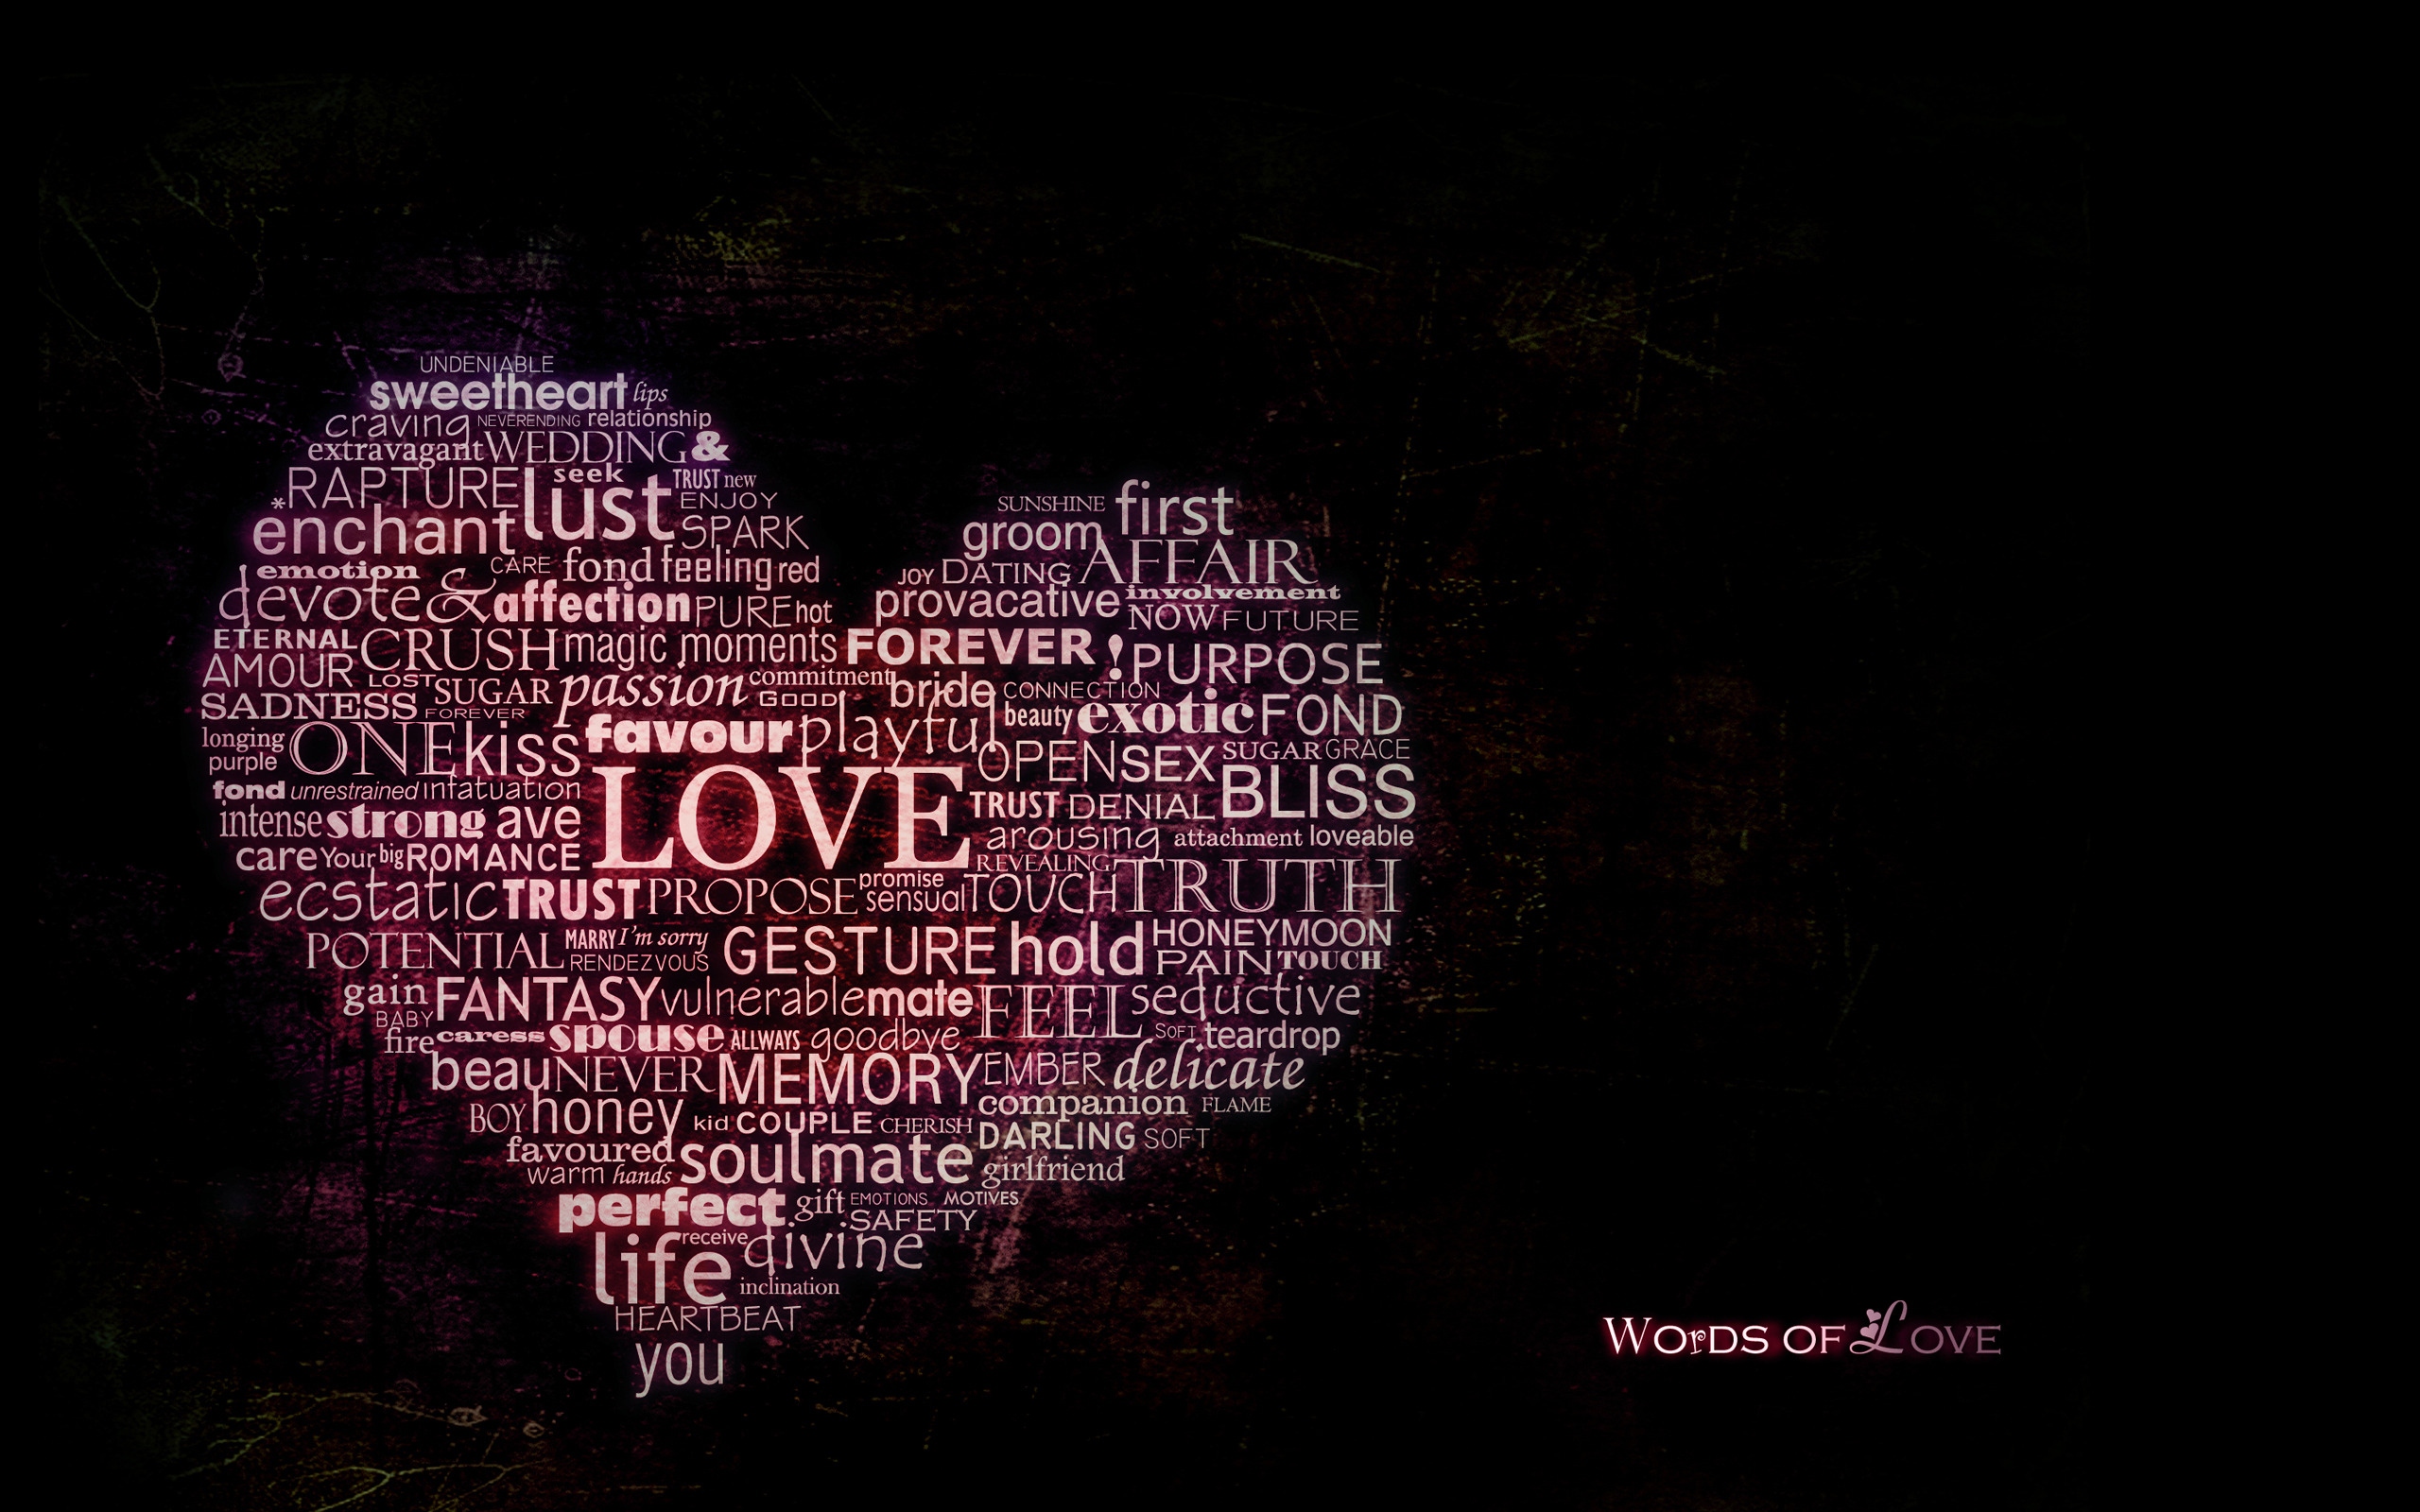 Background Laptop Wallpaper Love : Love Wallpaper Laptop HD #4110 Wallpaper WallDiskPaper